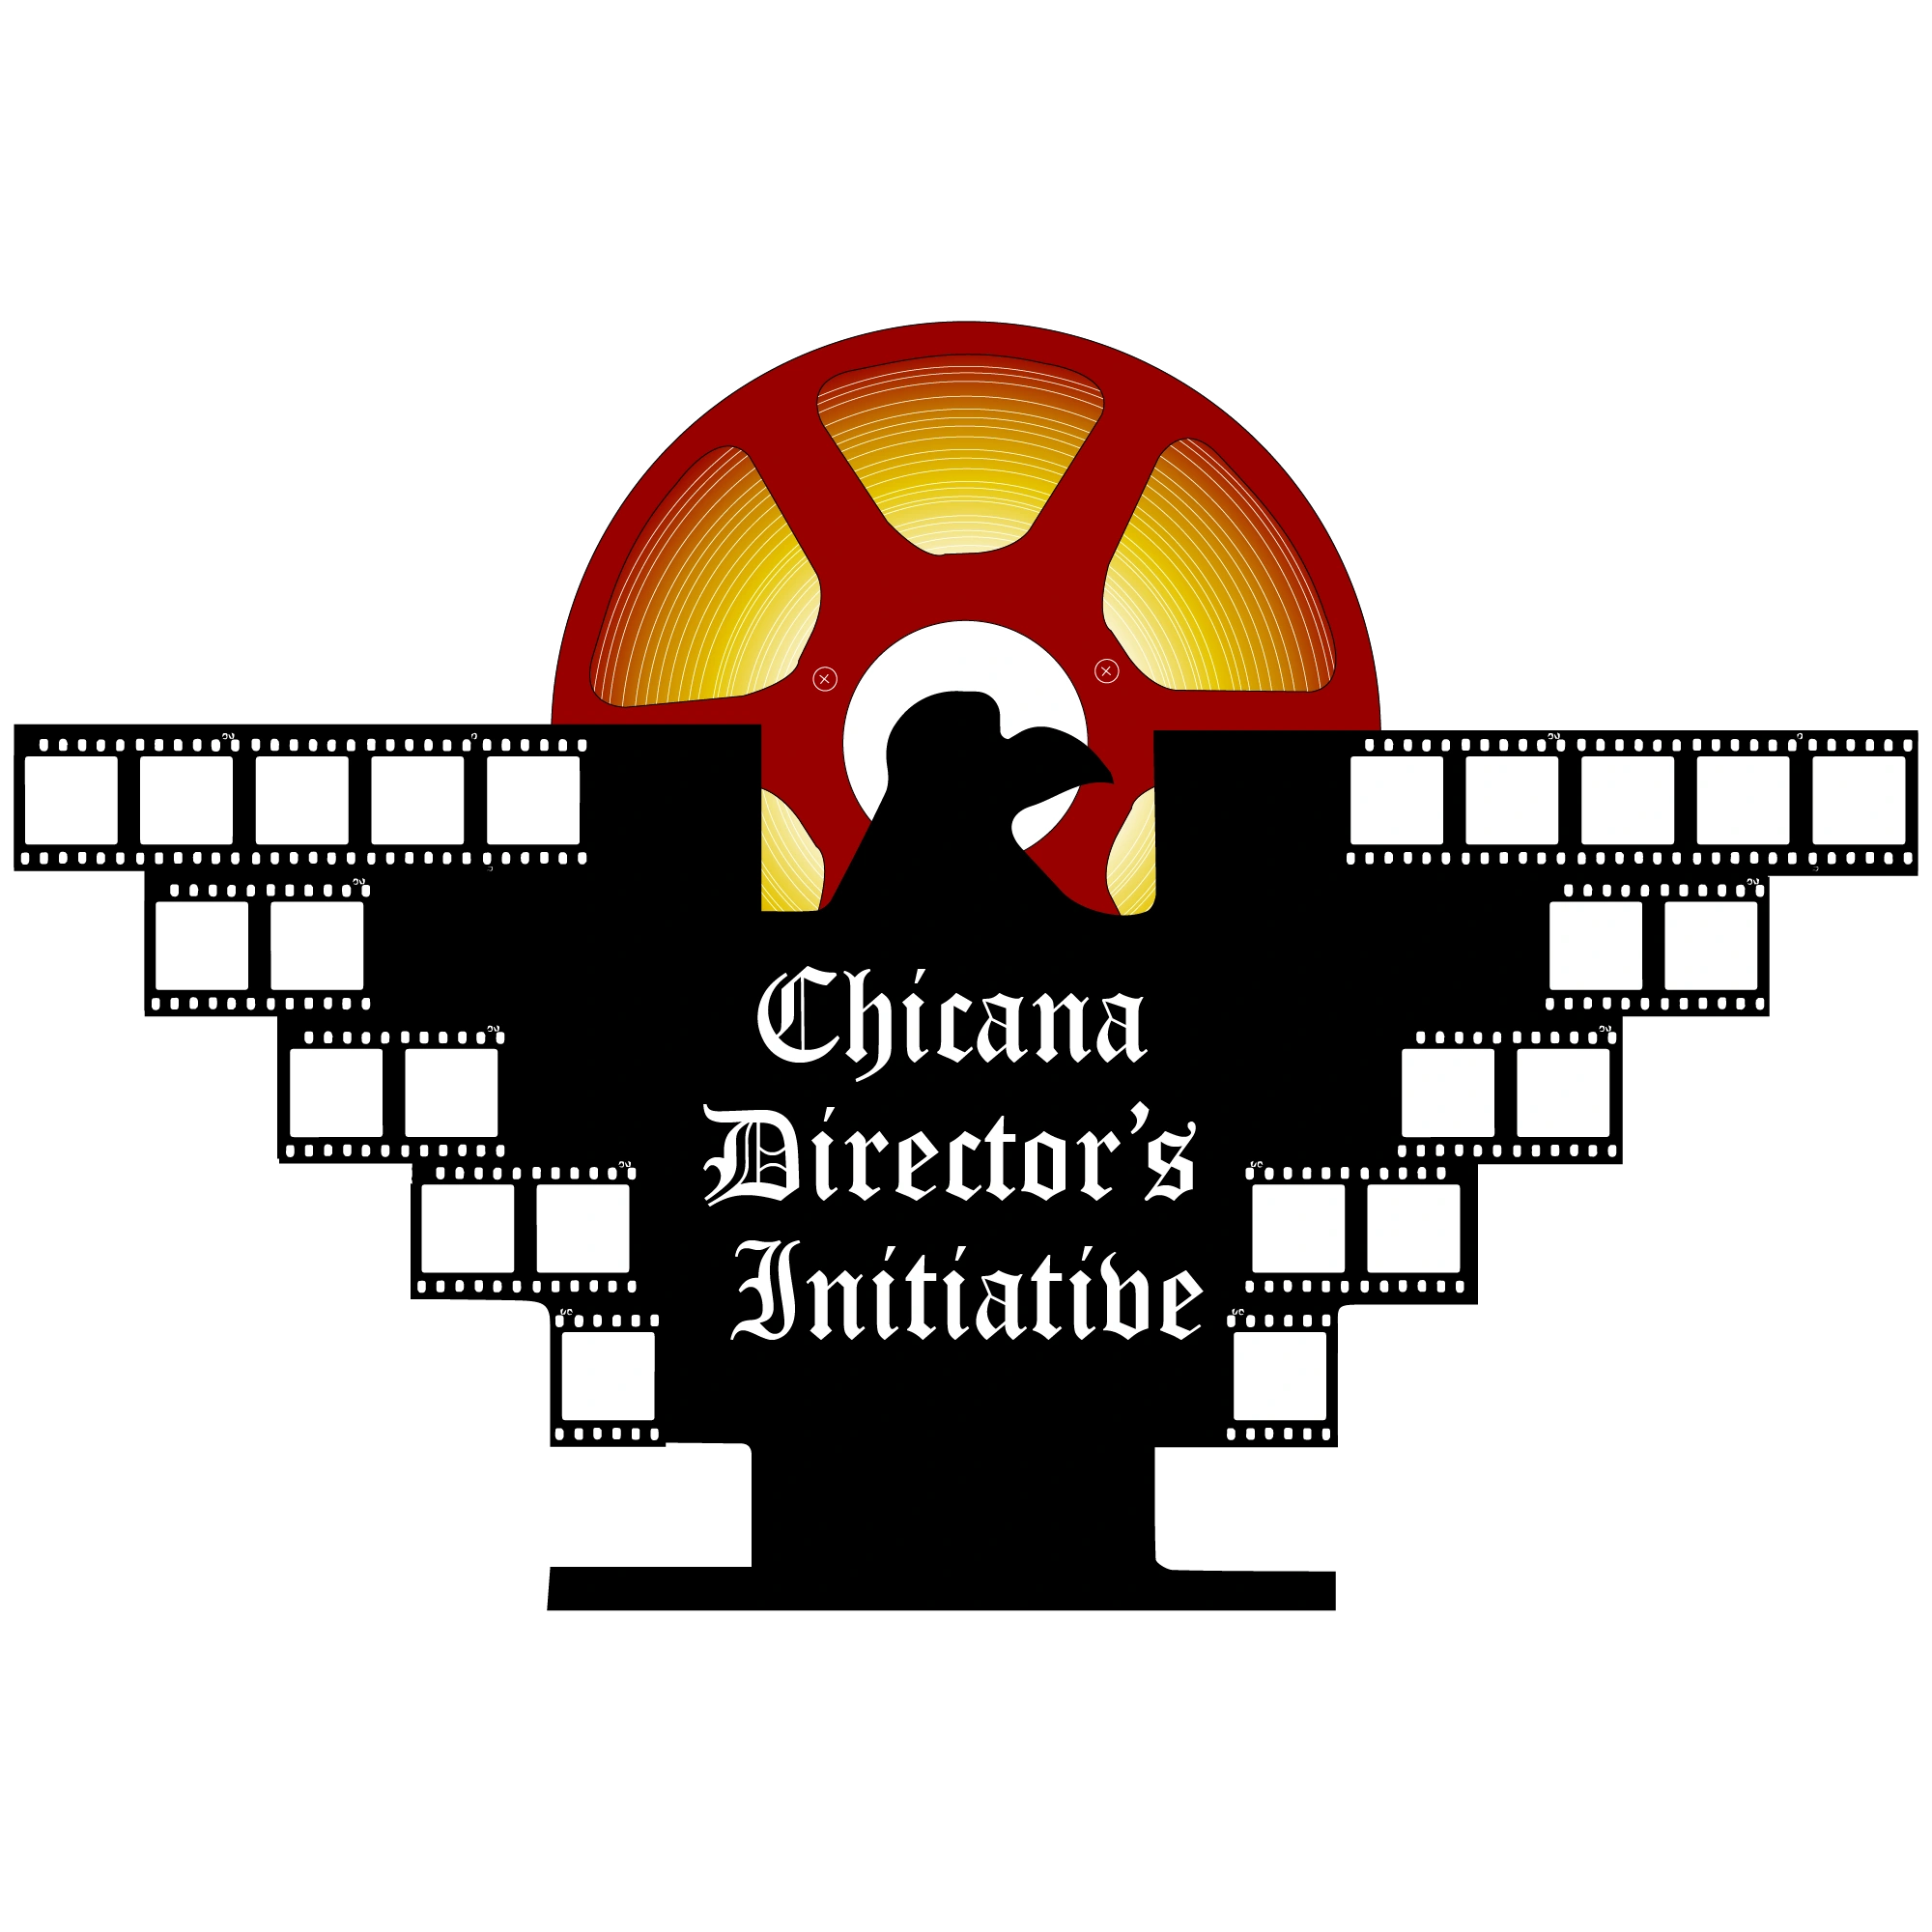 Chicana Director Initiative, Latina Director, Latina DP, entertainment Industry